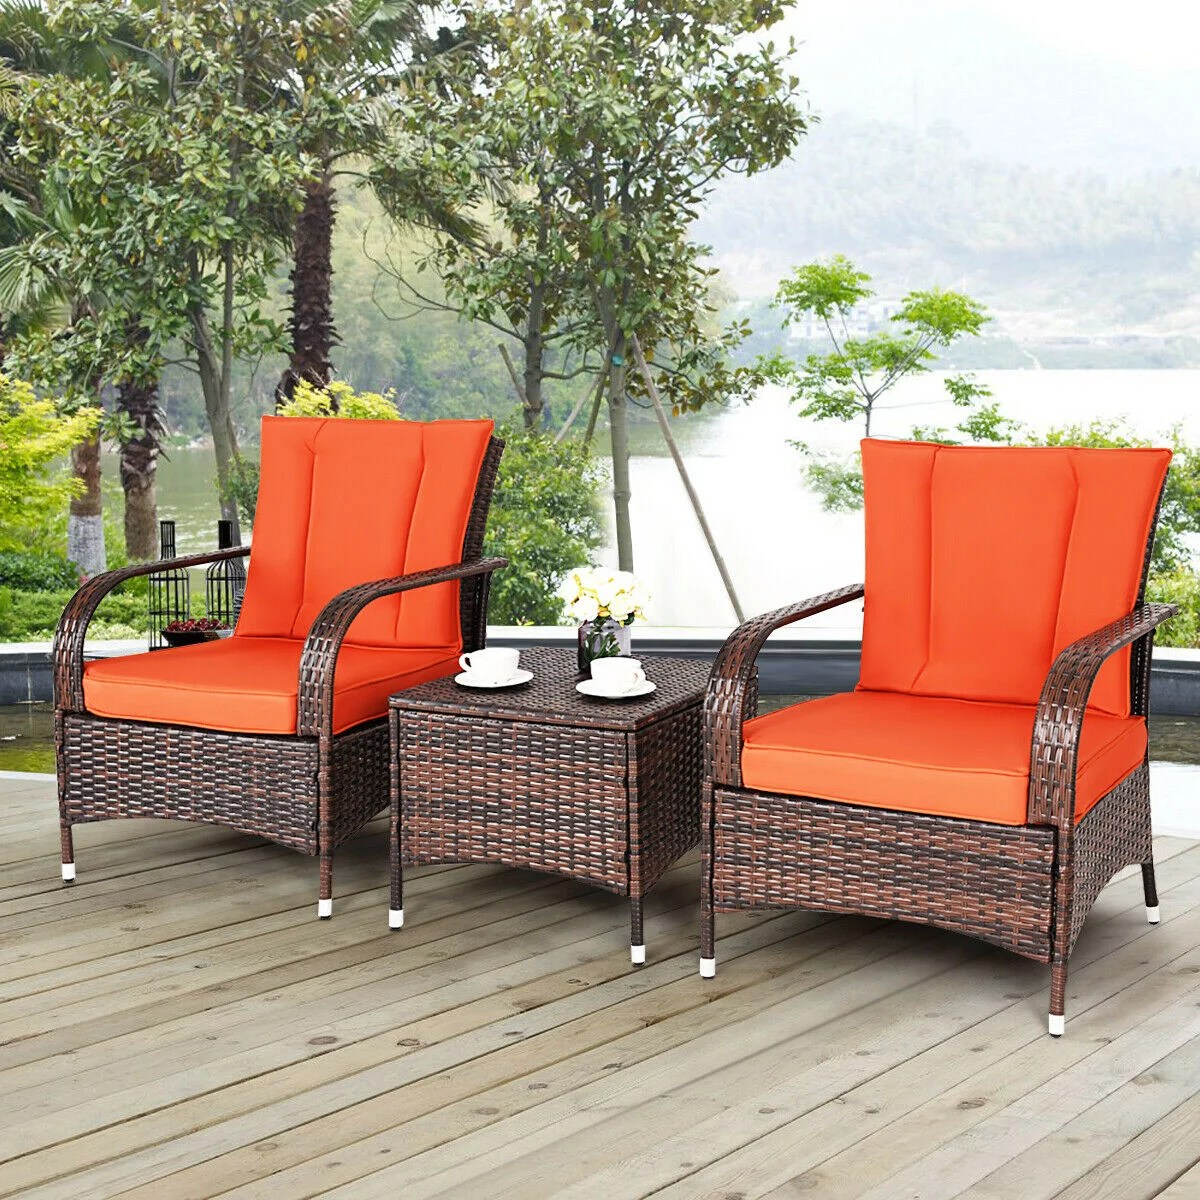 Read reviews and buy the best patio furniture sets from top companies including better homes and gardens, walker edison, belvedere and more. Costway 3 PCS Patio Rattan Furniture Set Coffee Table & 2 ...